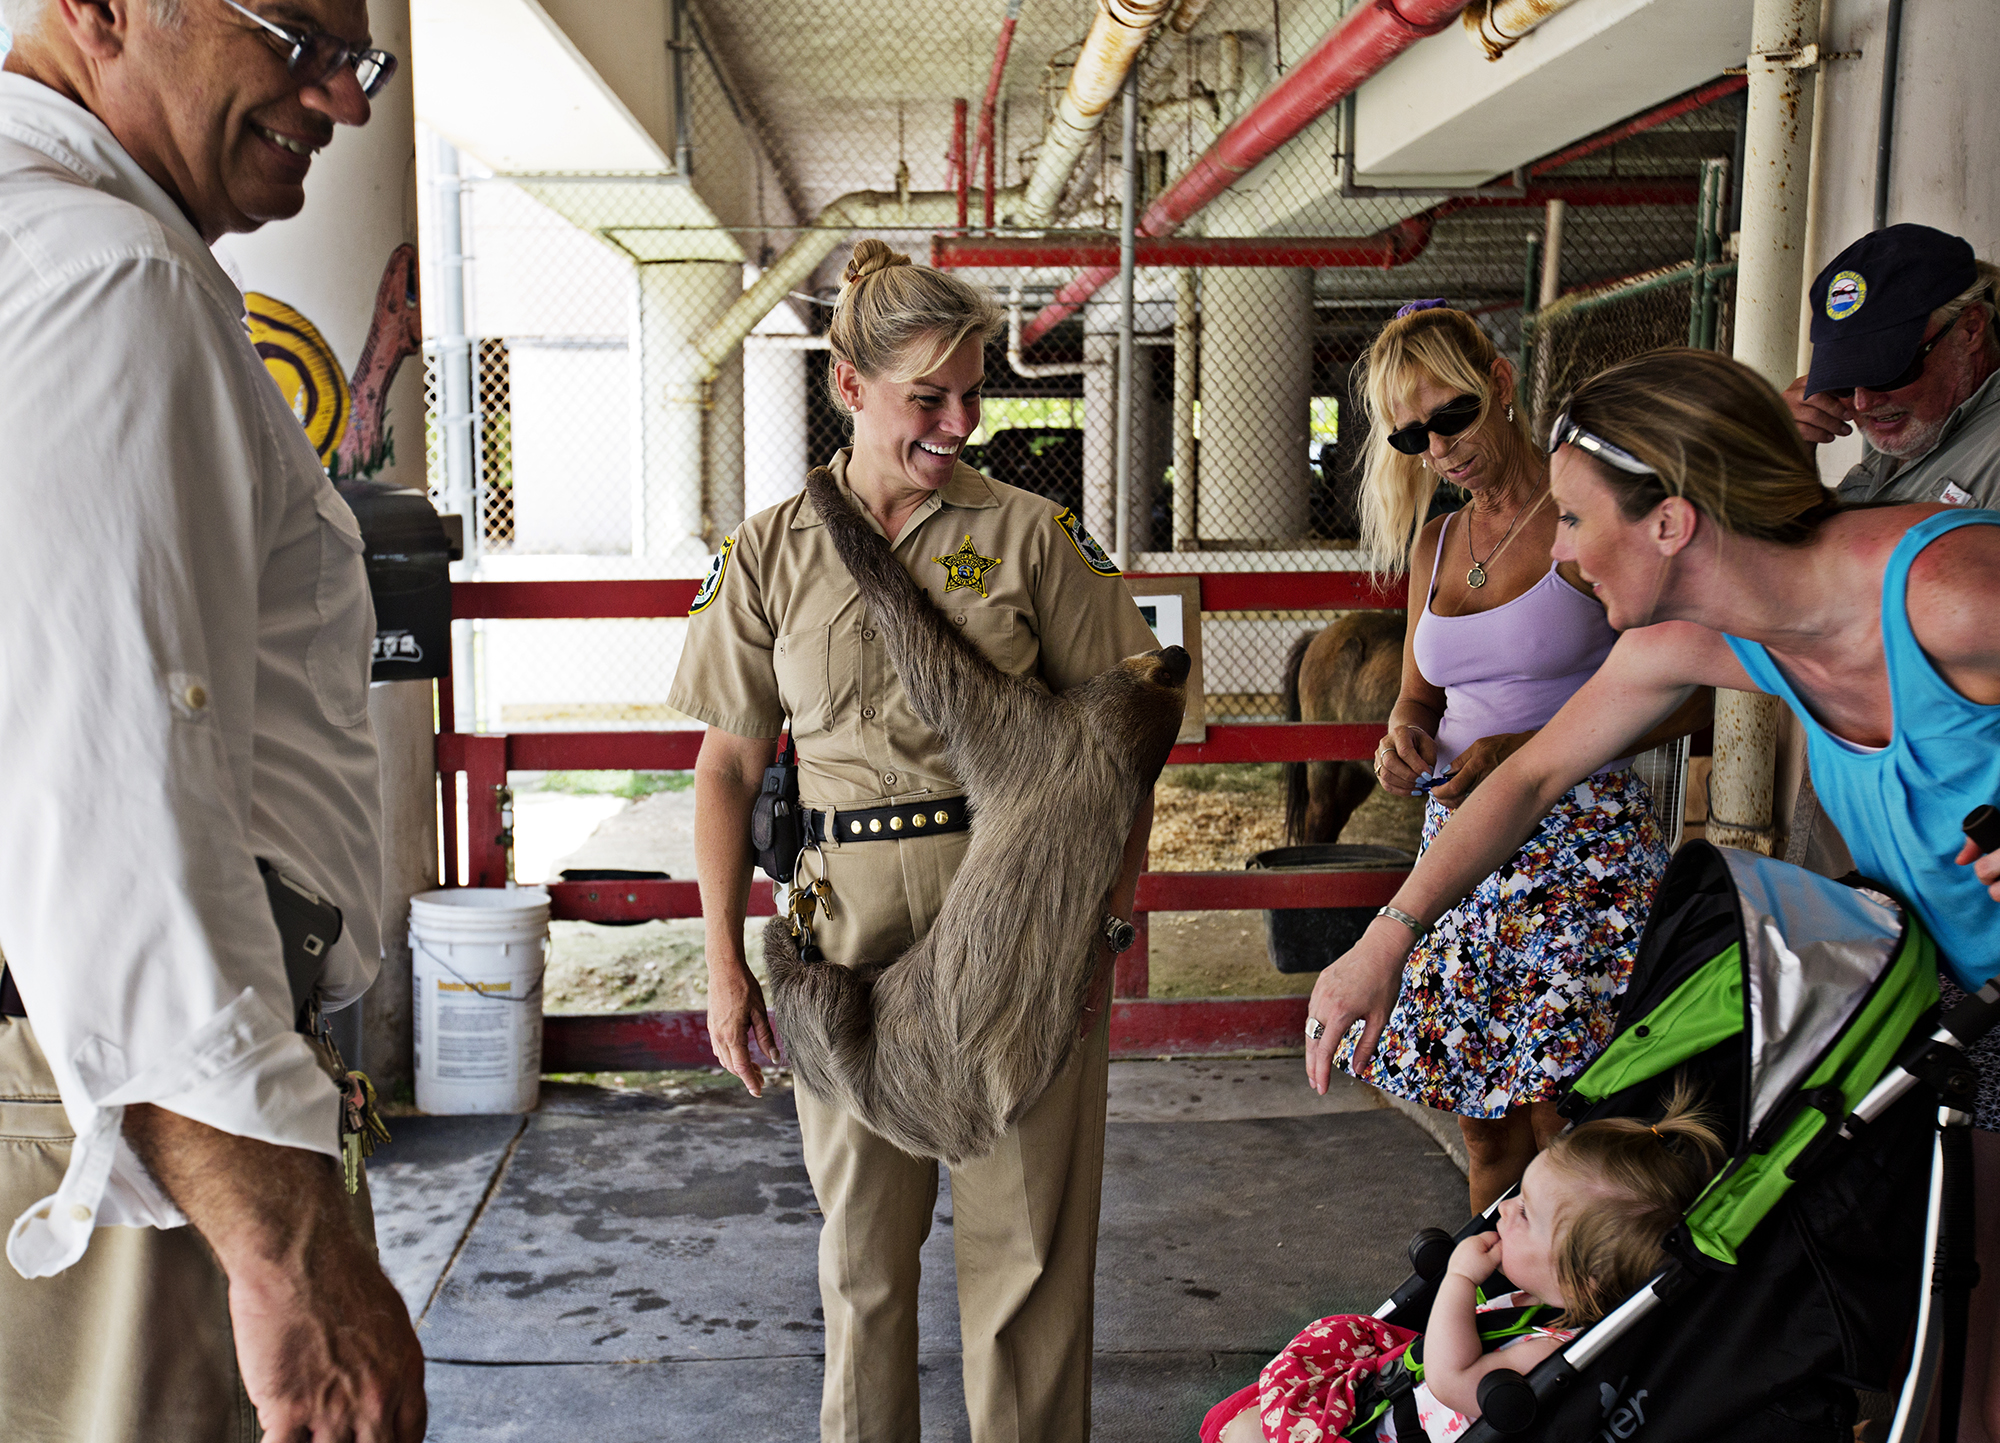 """Curator Jeanne Selander - """"Farmer Jeanne"""" - holds """"Mo"""" the sloth, and visits with a crowd of visitors for an open house at the jail farm. """"Everyone thinks he is hugging me, but really he just thinks I'm a tree,"""" says Selander.  Photo by Kim Raff"""